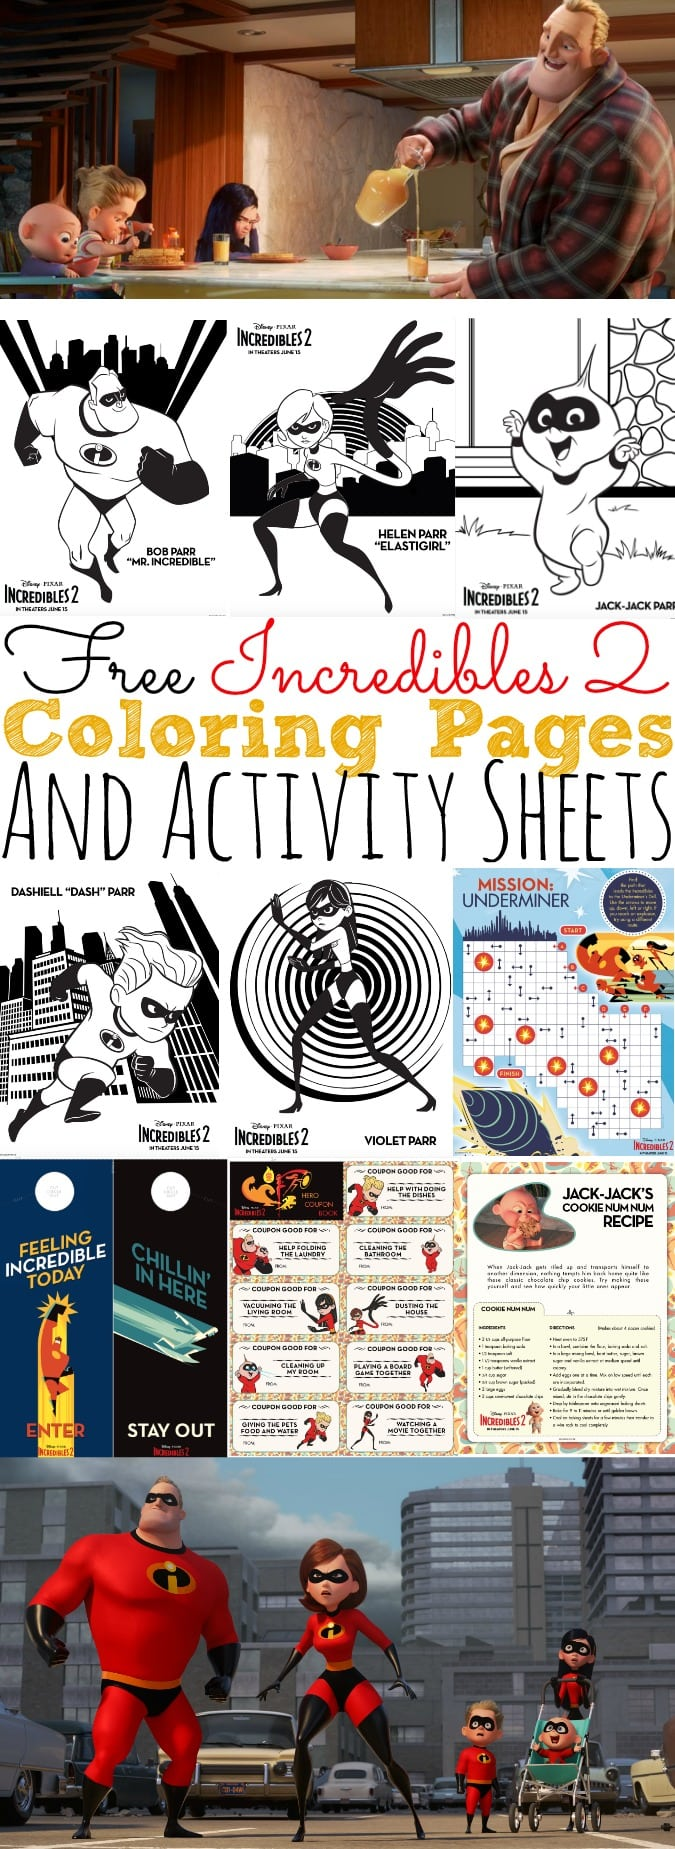 Free Incredibles 2 Coloring Pages And Activity Sheets Simply Today Life